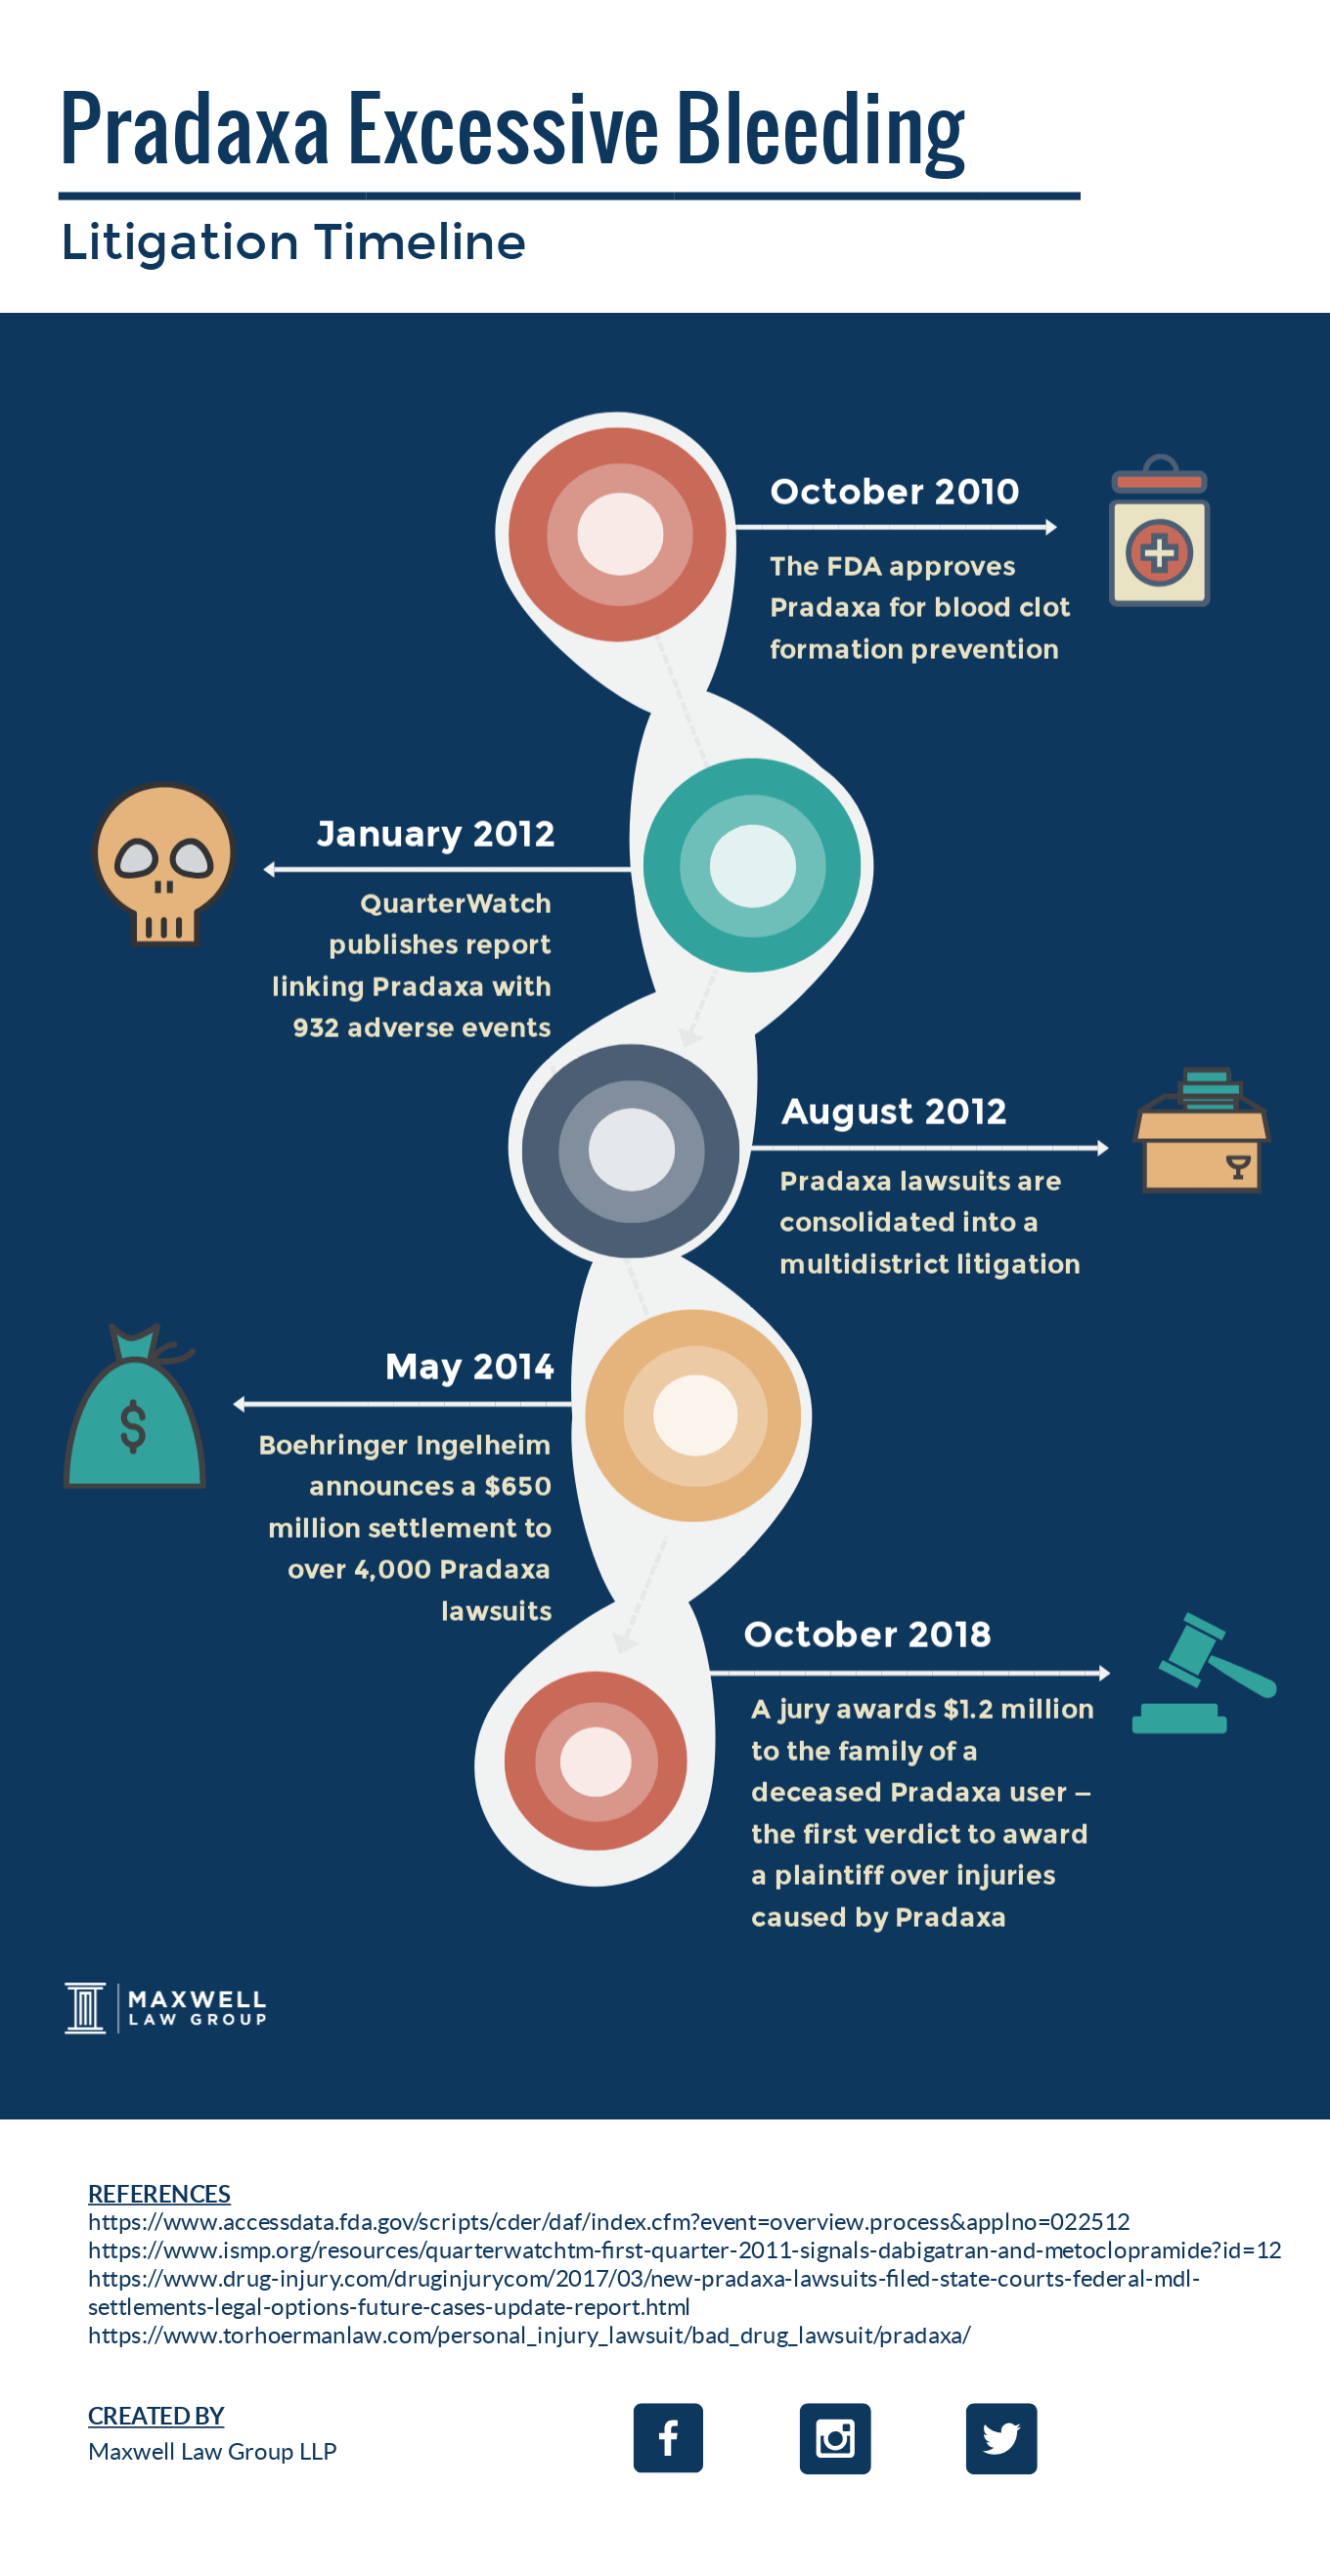 pradaxa litigation timeline